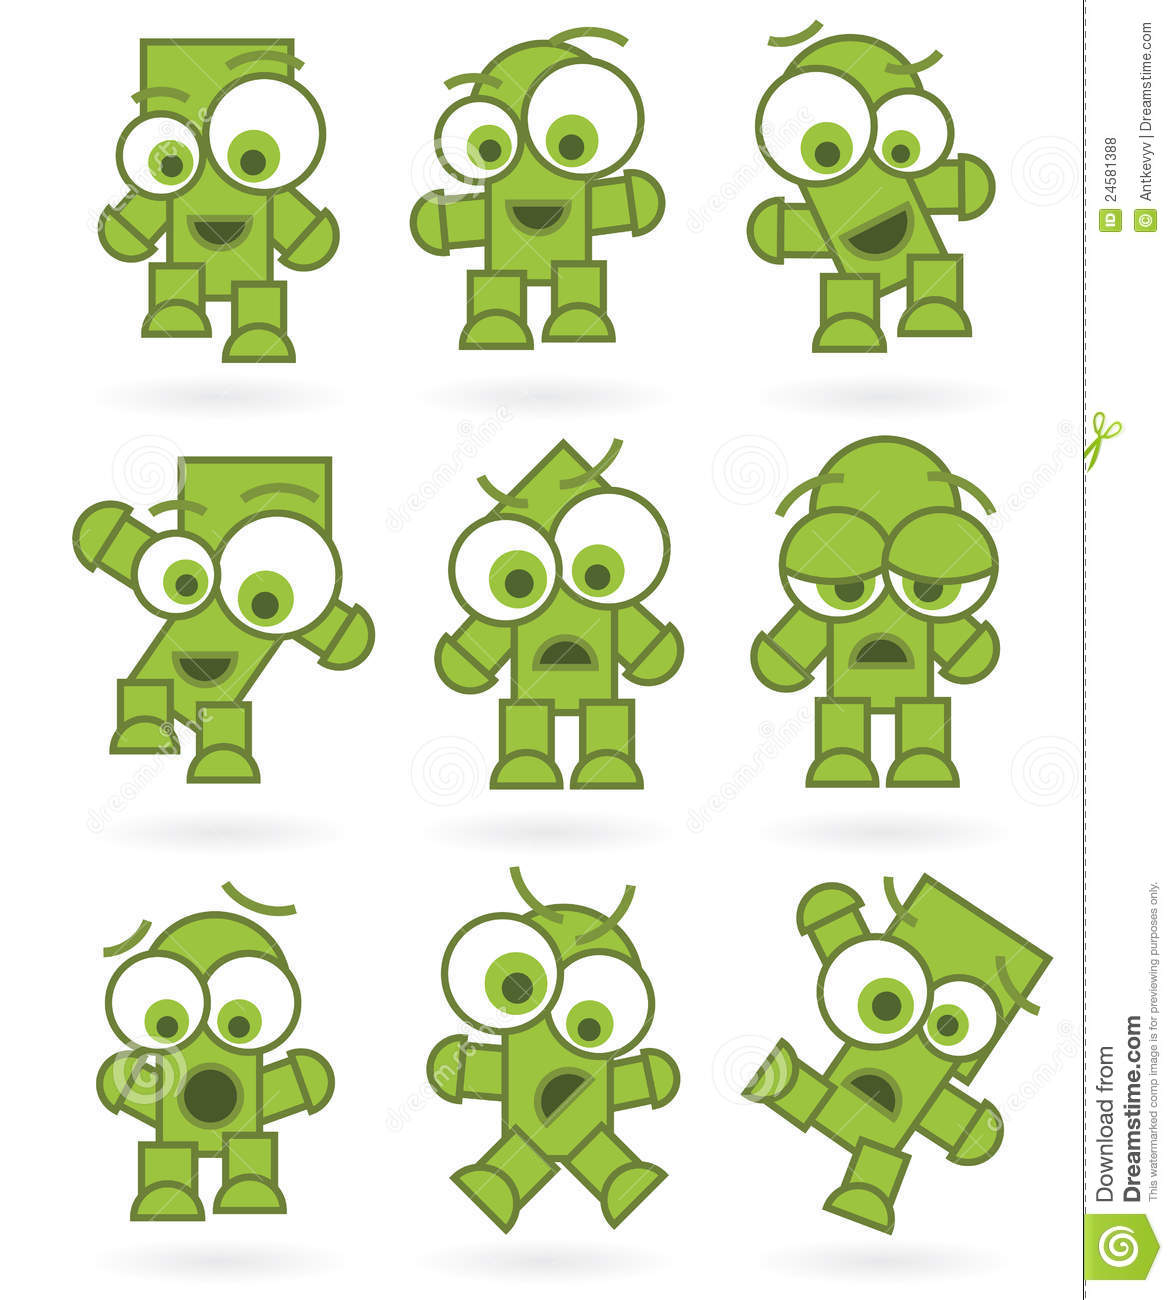 A Cartoon Character That Is Green : Funny green cartoons robot monster character set royalty